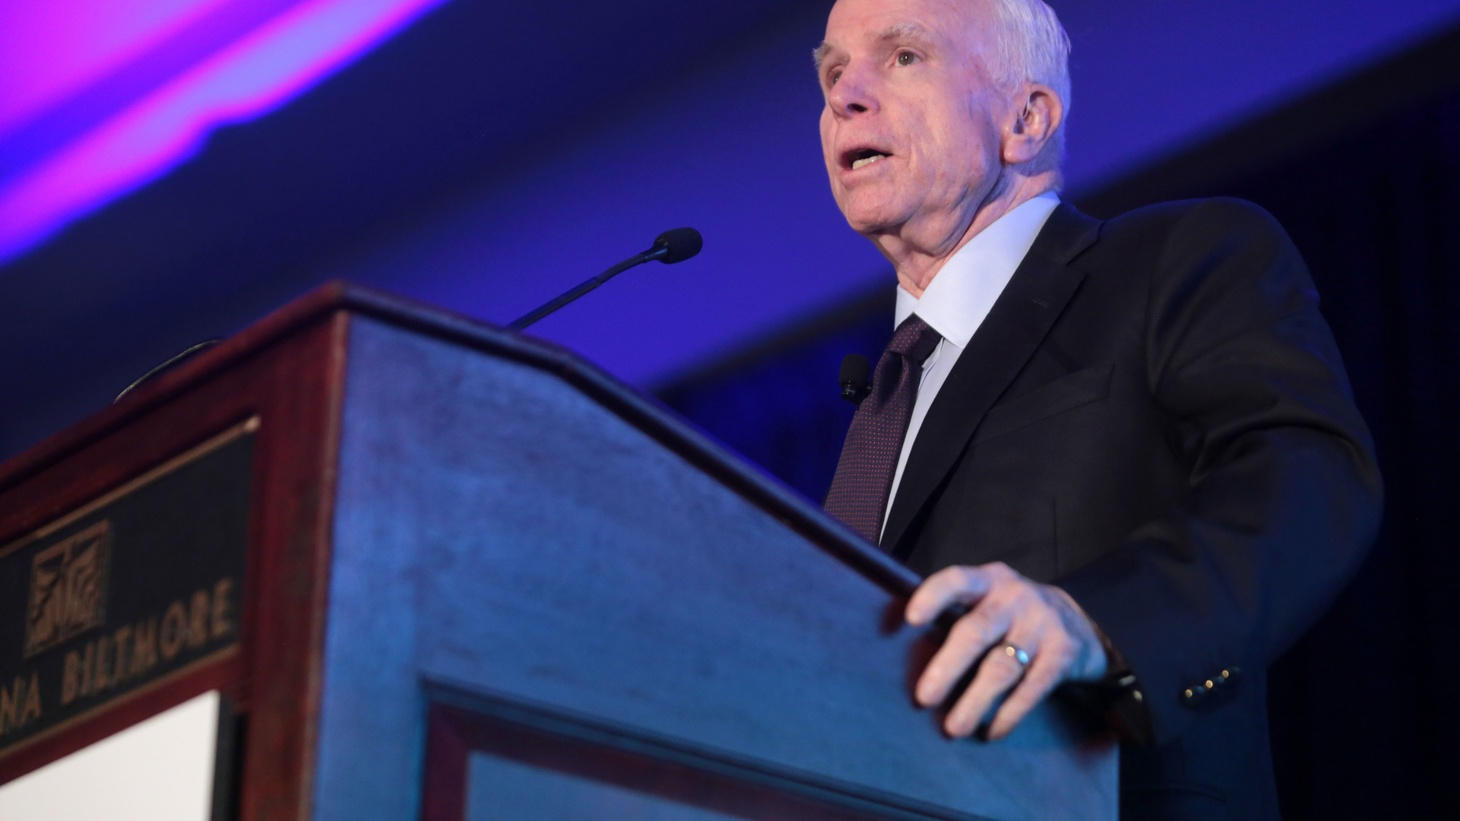 Senator John McCain gave a thumbs-down to the latest Obama repeal effort, effectively killing it.